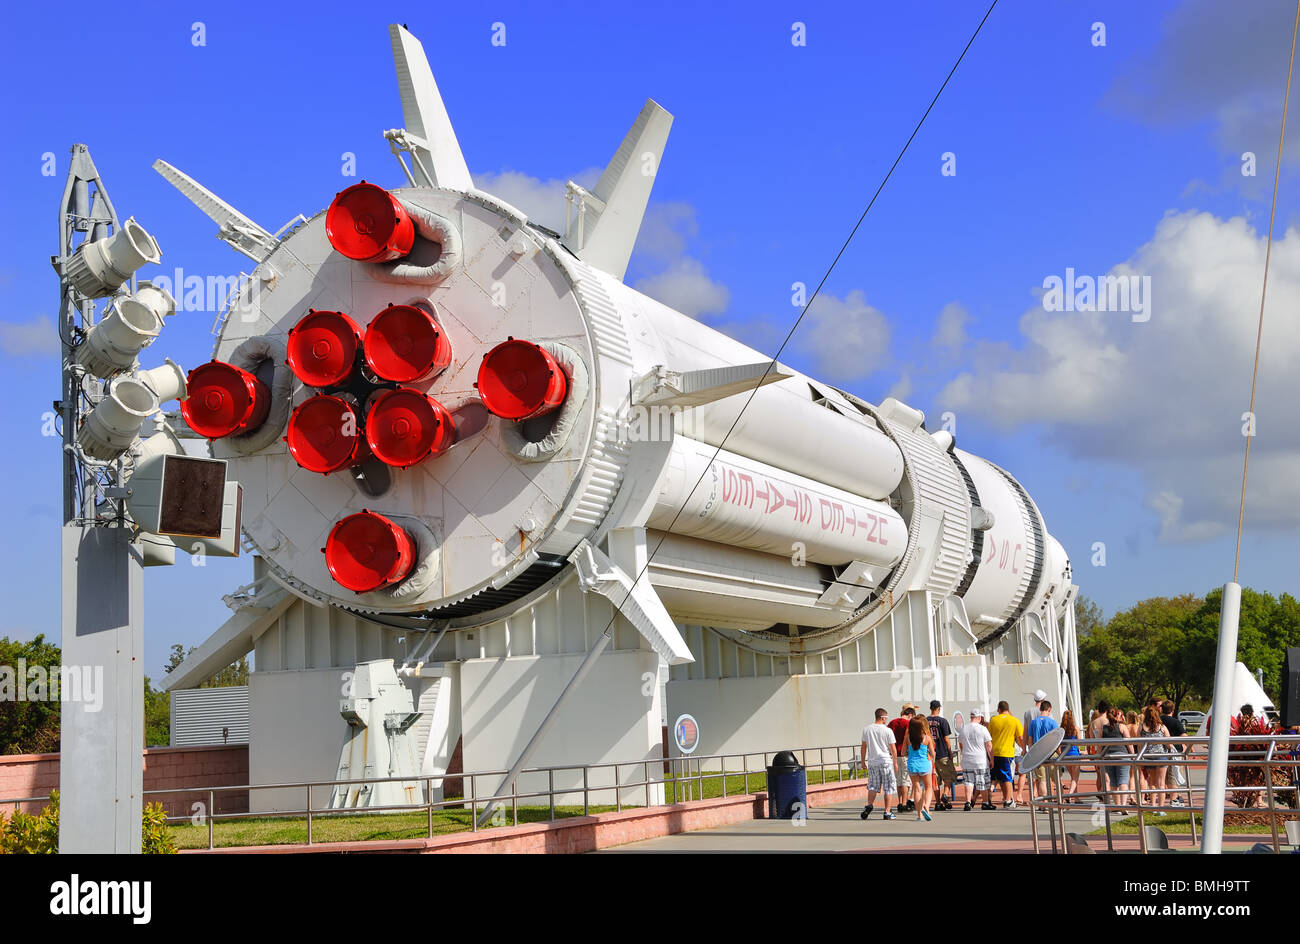 The huge Saturn Rocket, SA 209, on display in the Rocket Garden at The Kennedy Space Centre in Florida - Stock Image